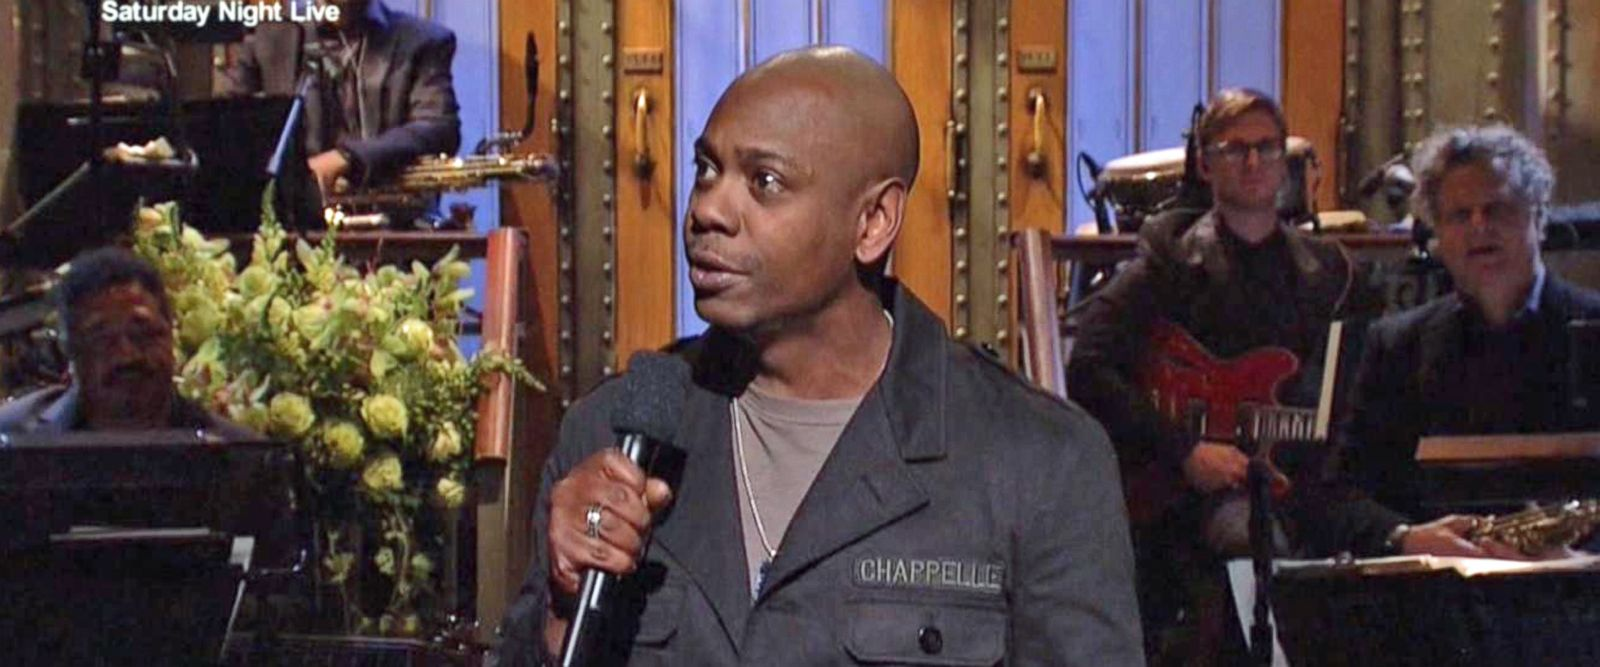 VIDEO: 'Real Live': Dave Chappelle 'gets real'